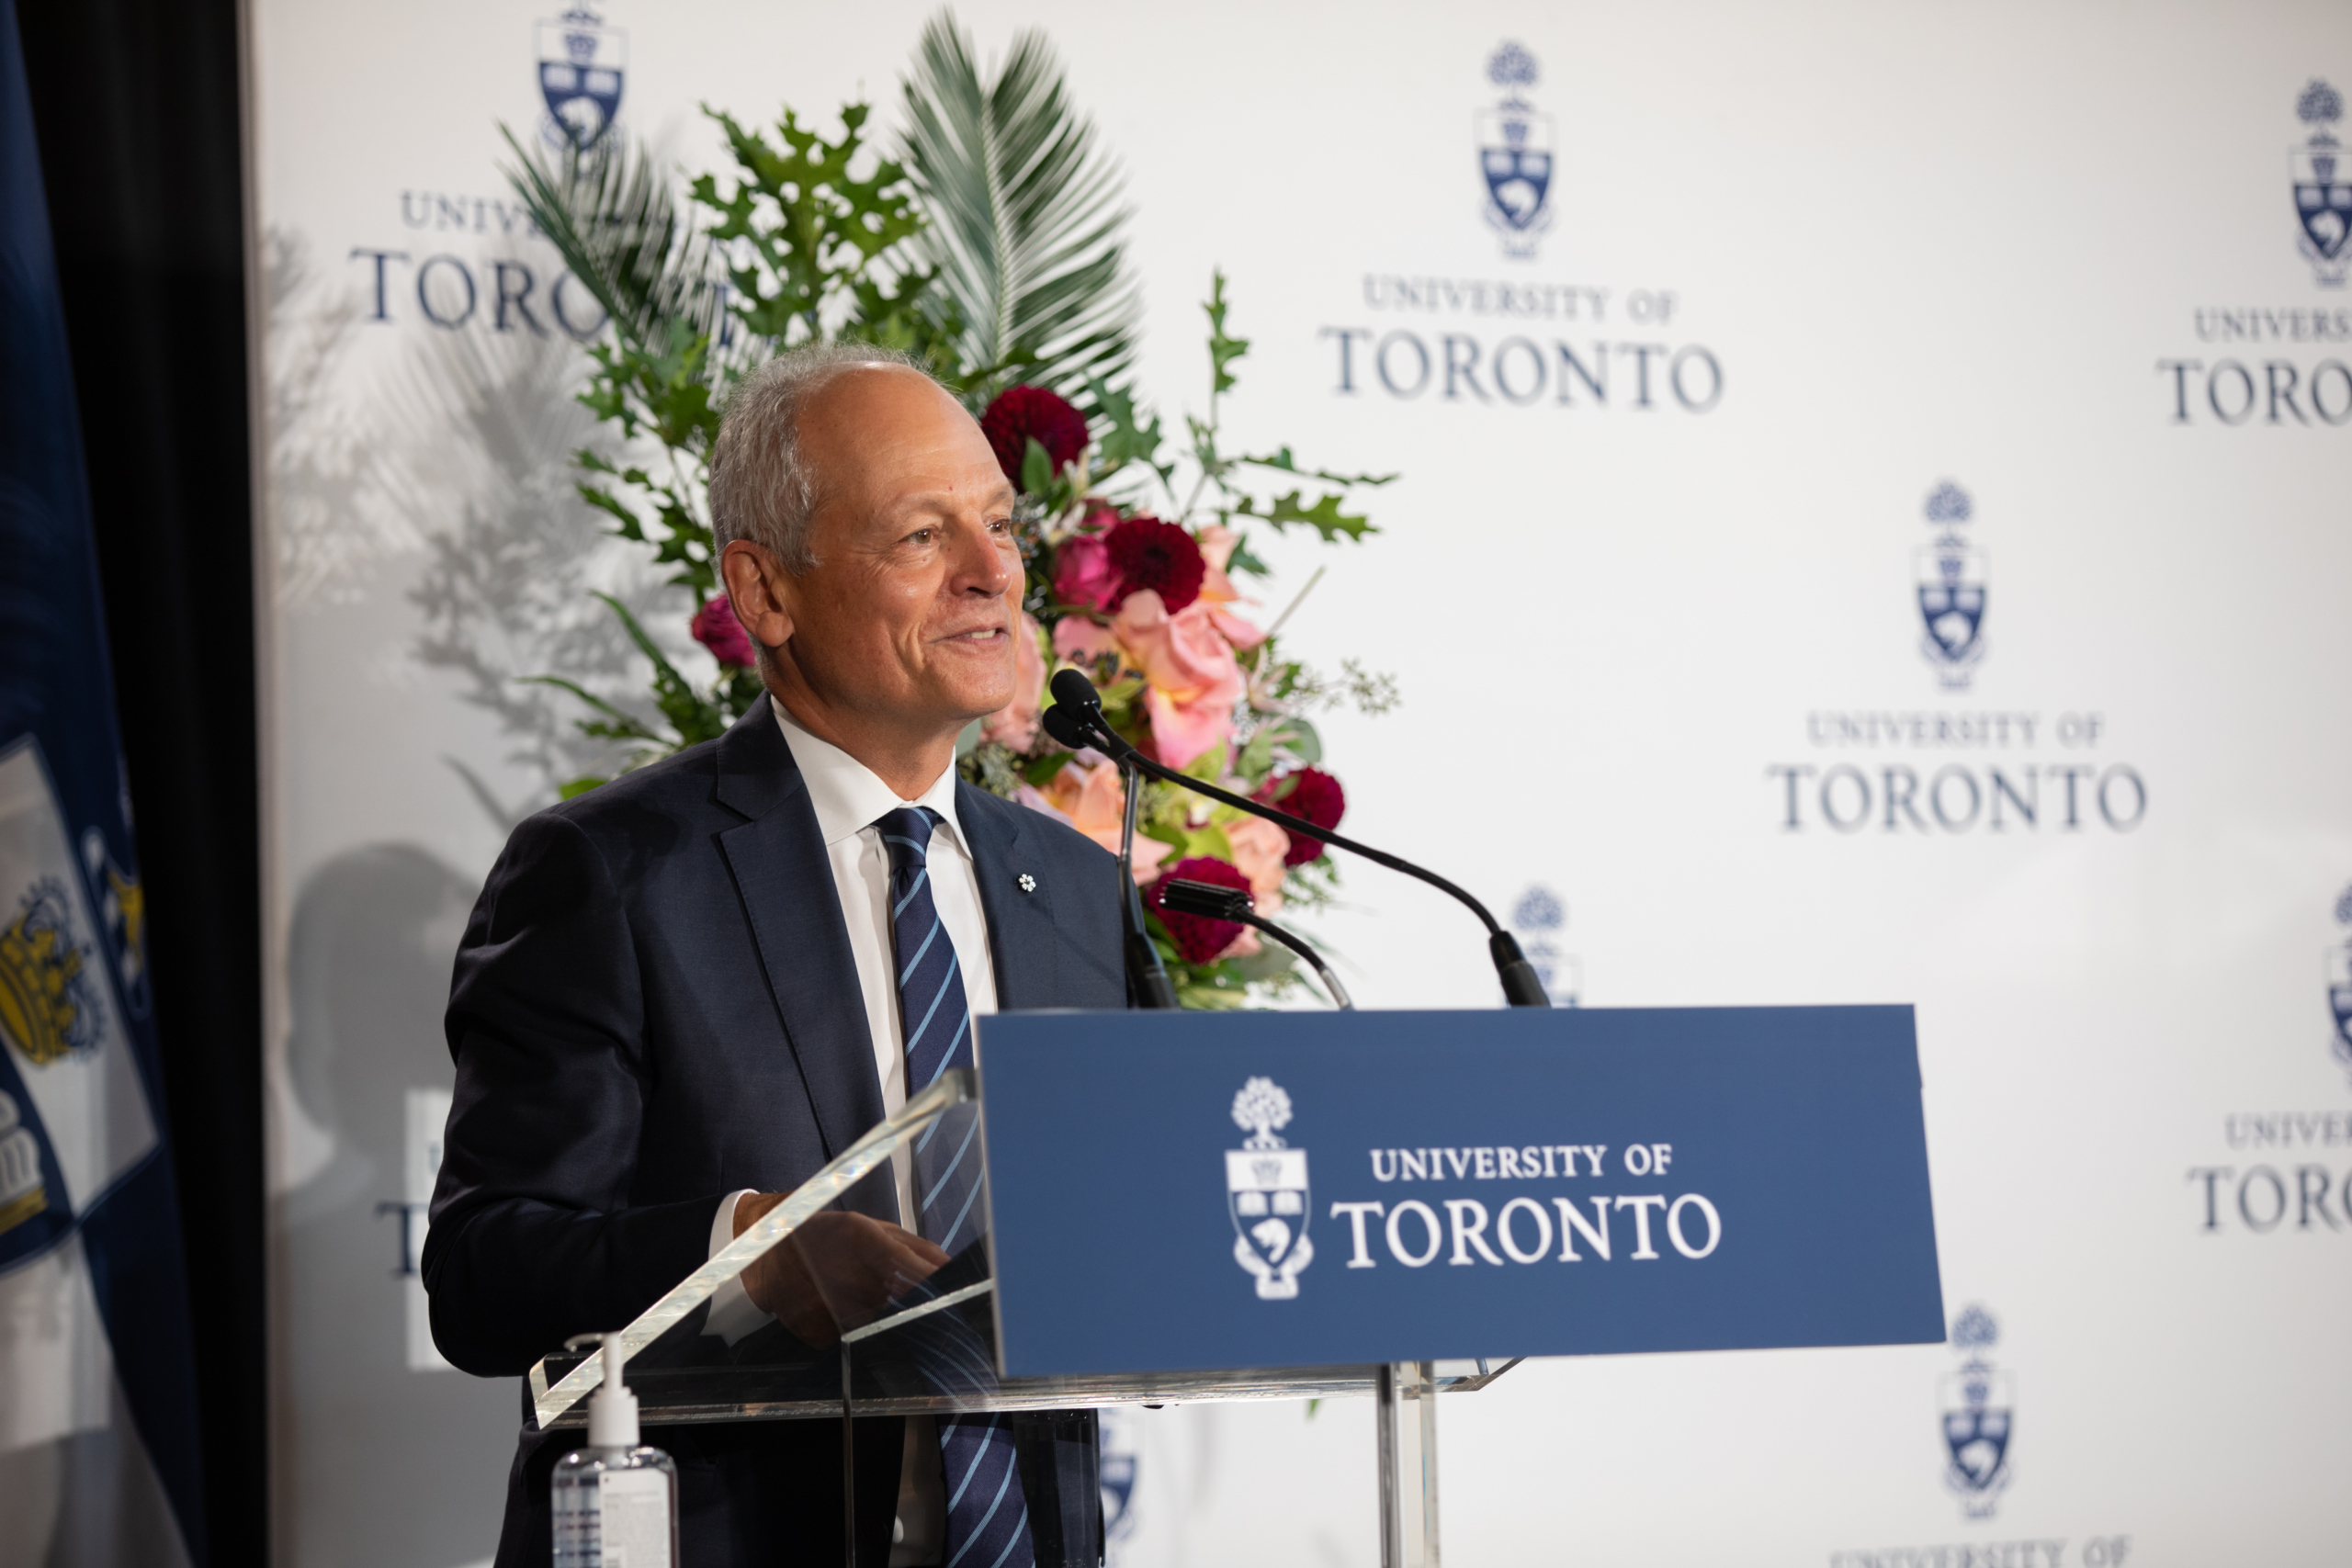 University of Toronto President Meric Gertler stands at a podium as he makes his remarks at the gift announcement event.